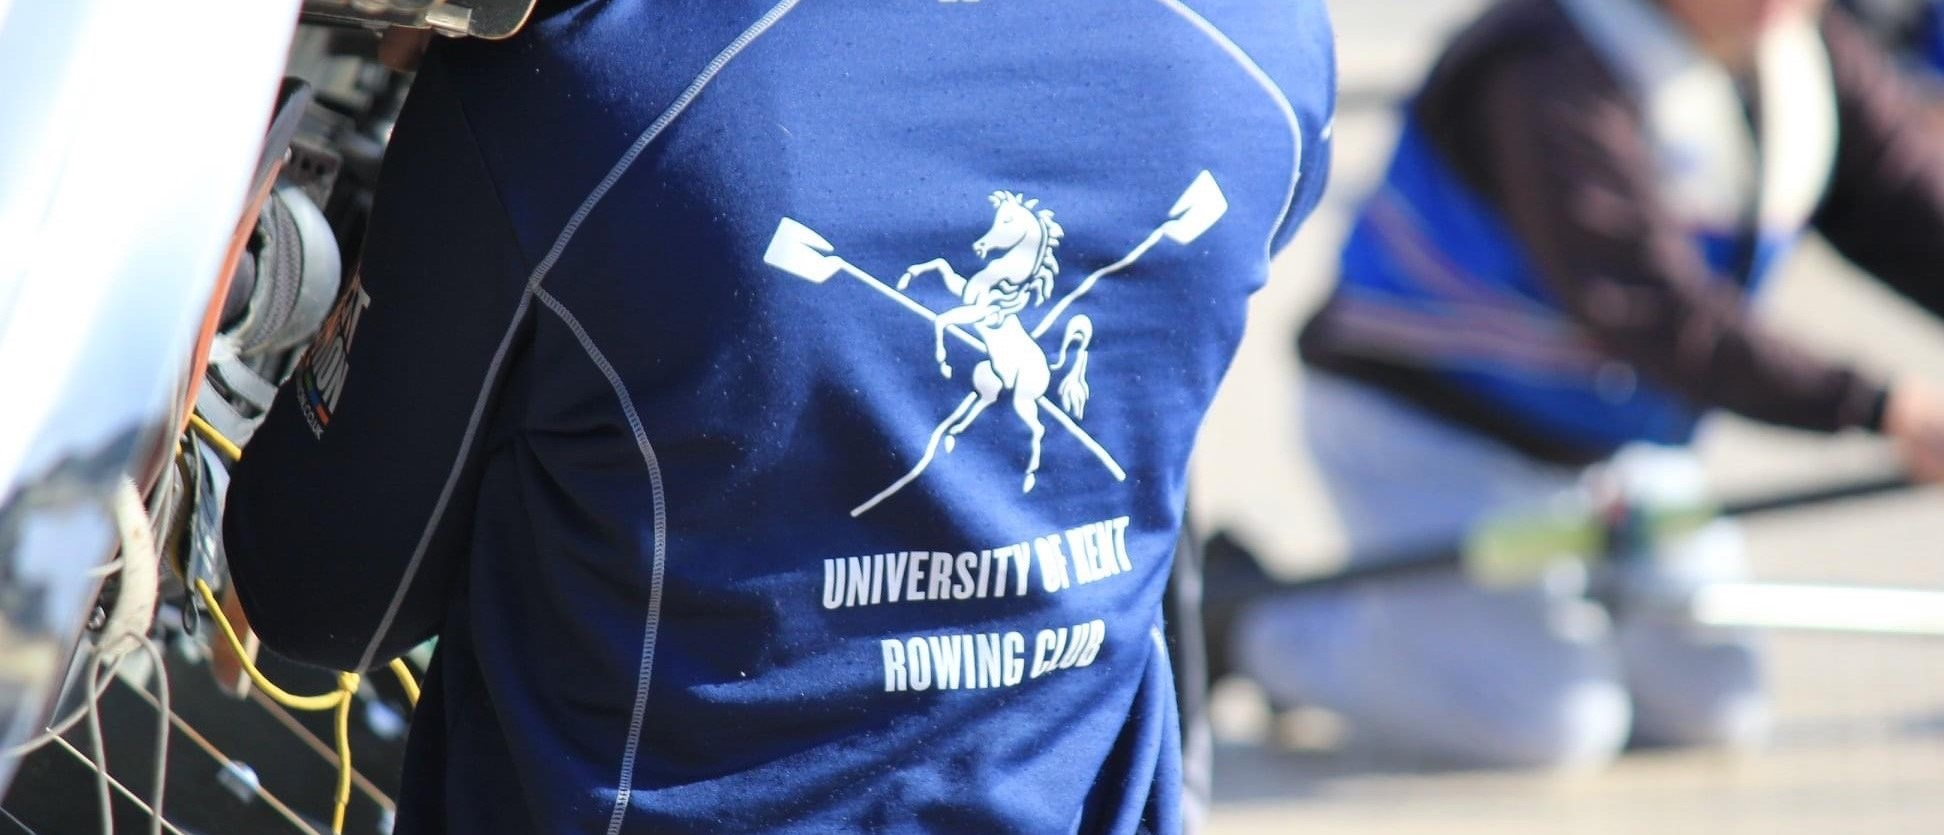 Sponsor the the University of Kent Rowing Club!